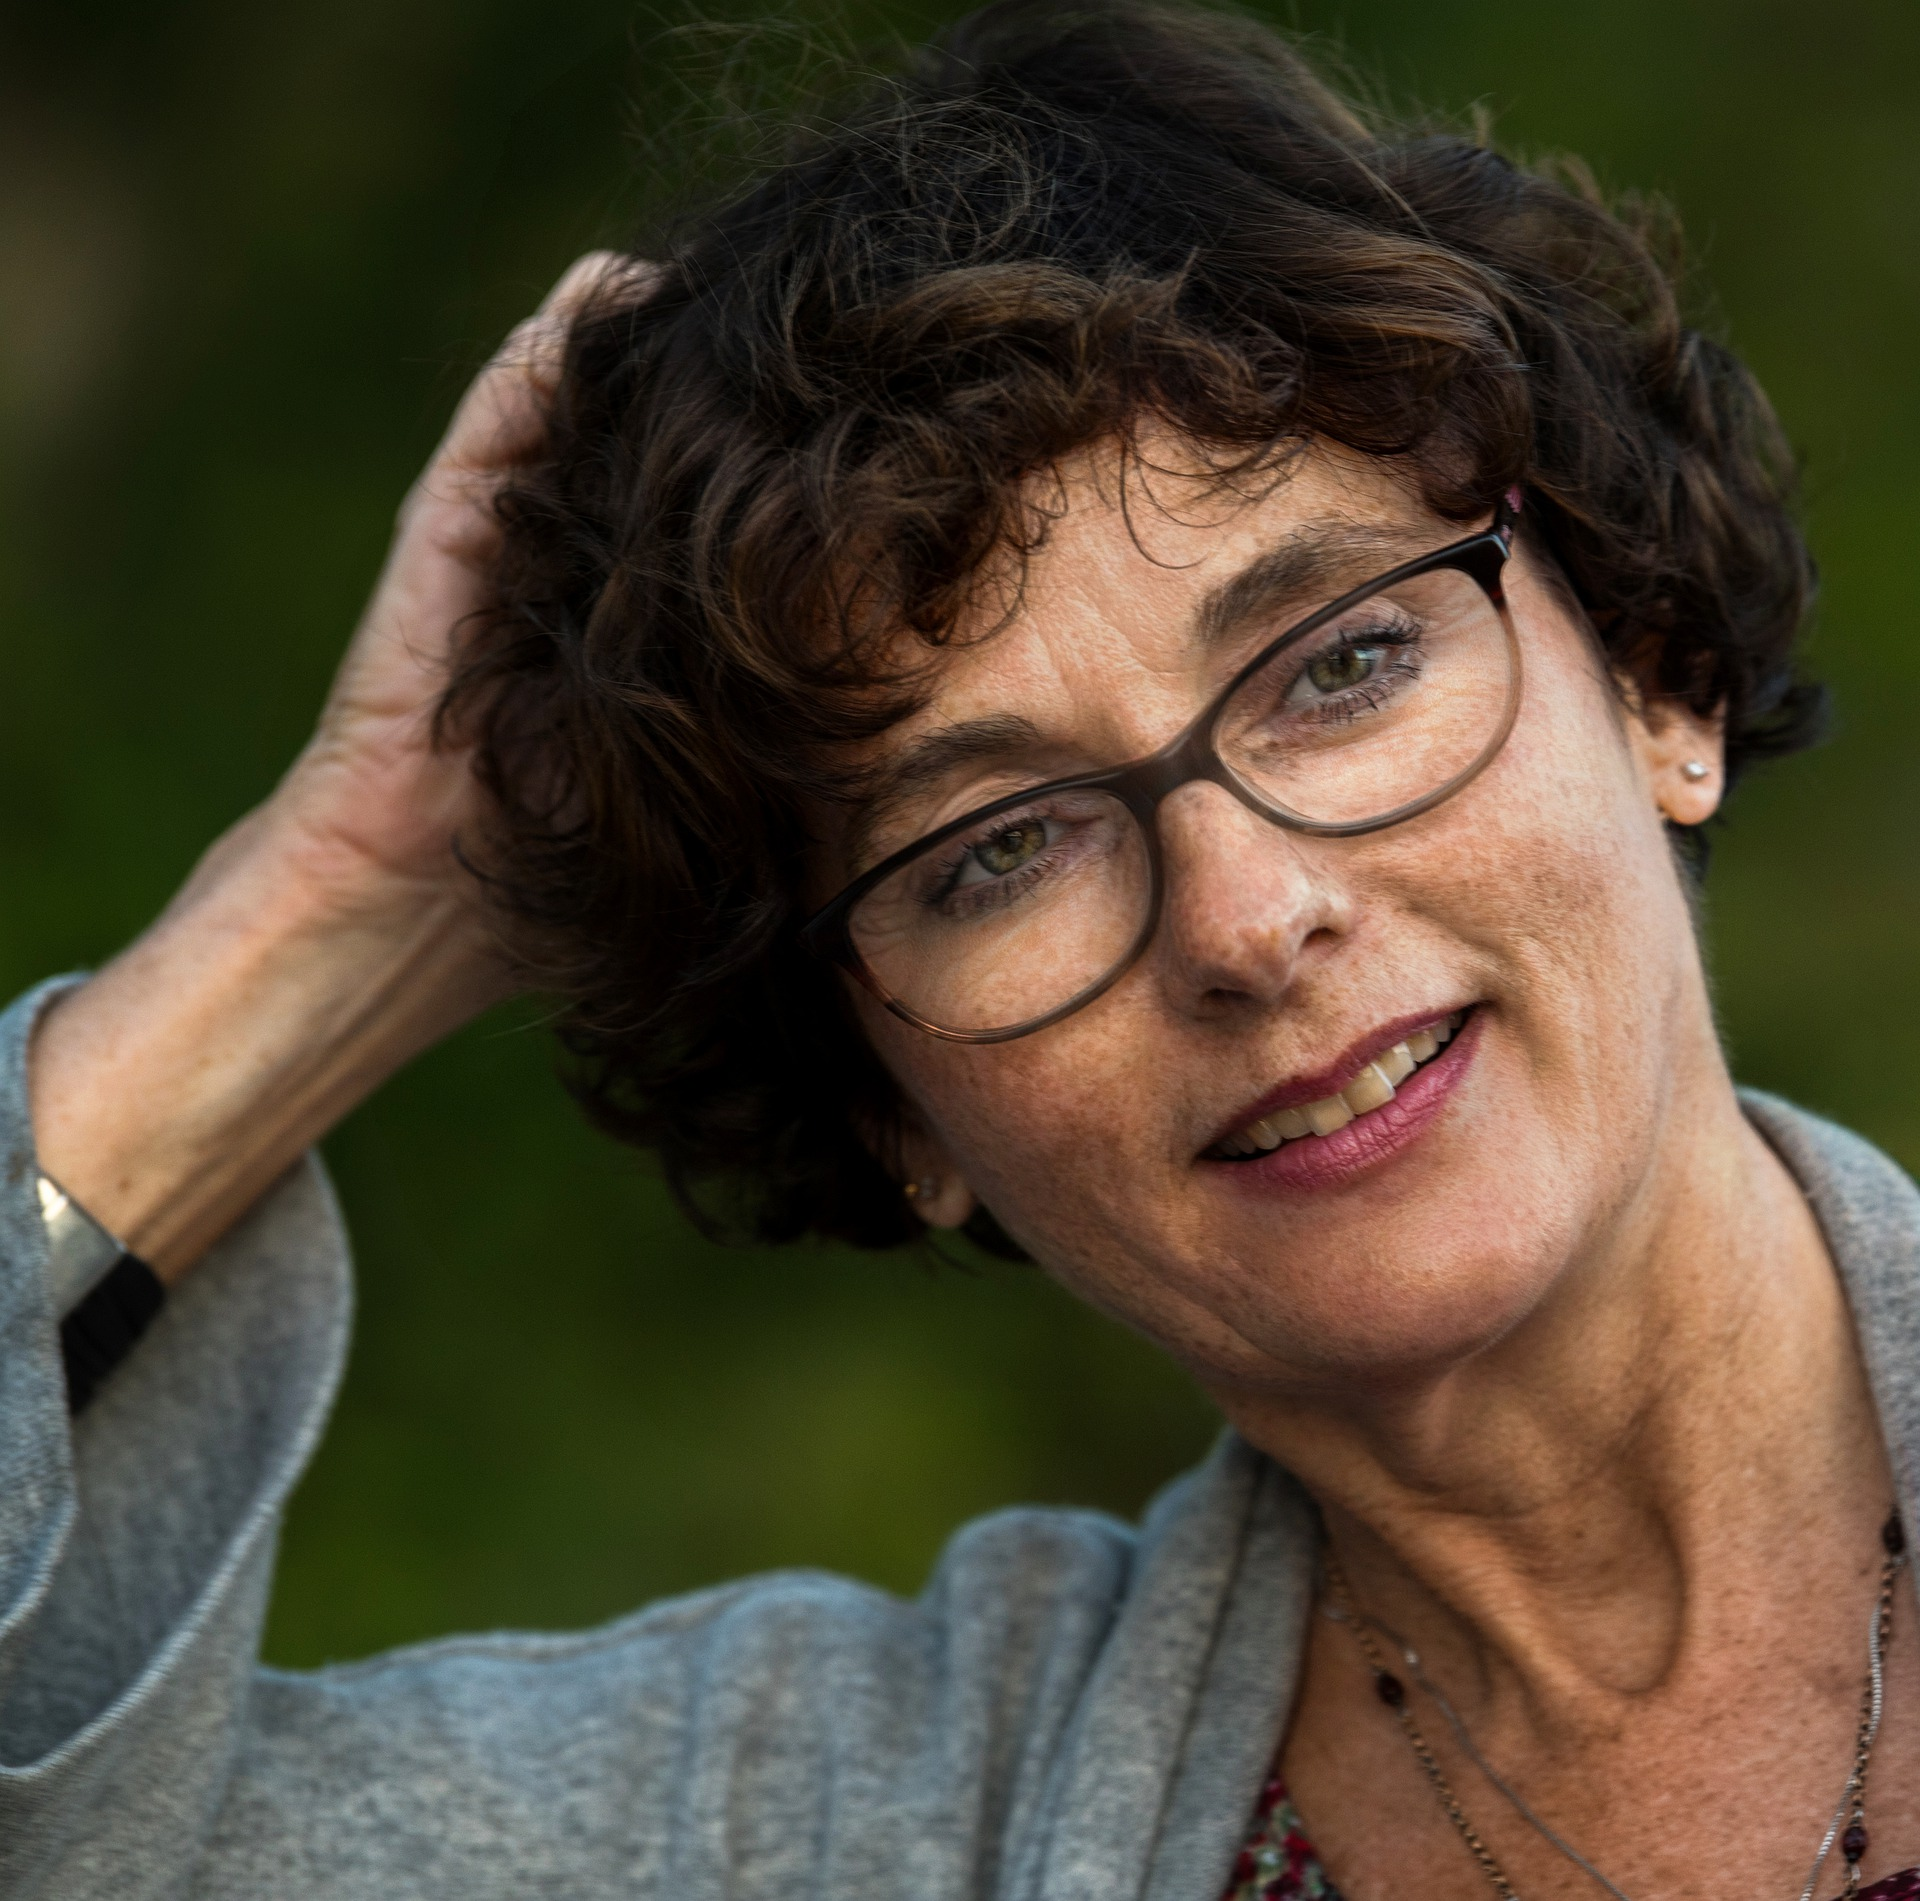 woman with curly hair and glasses